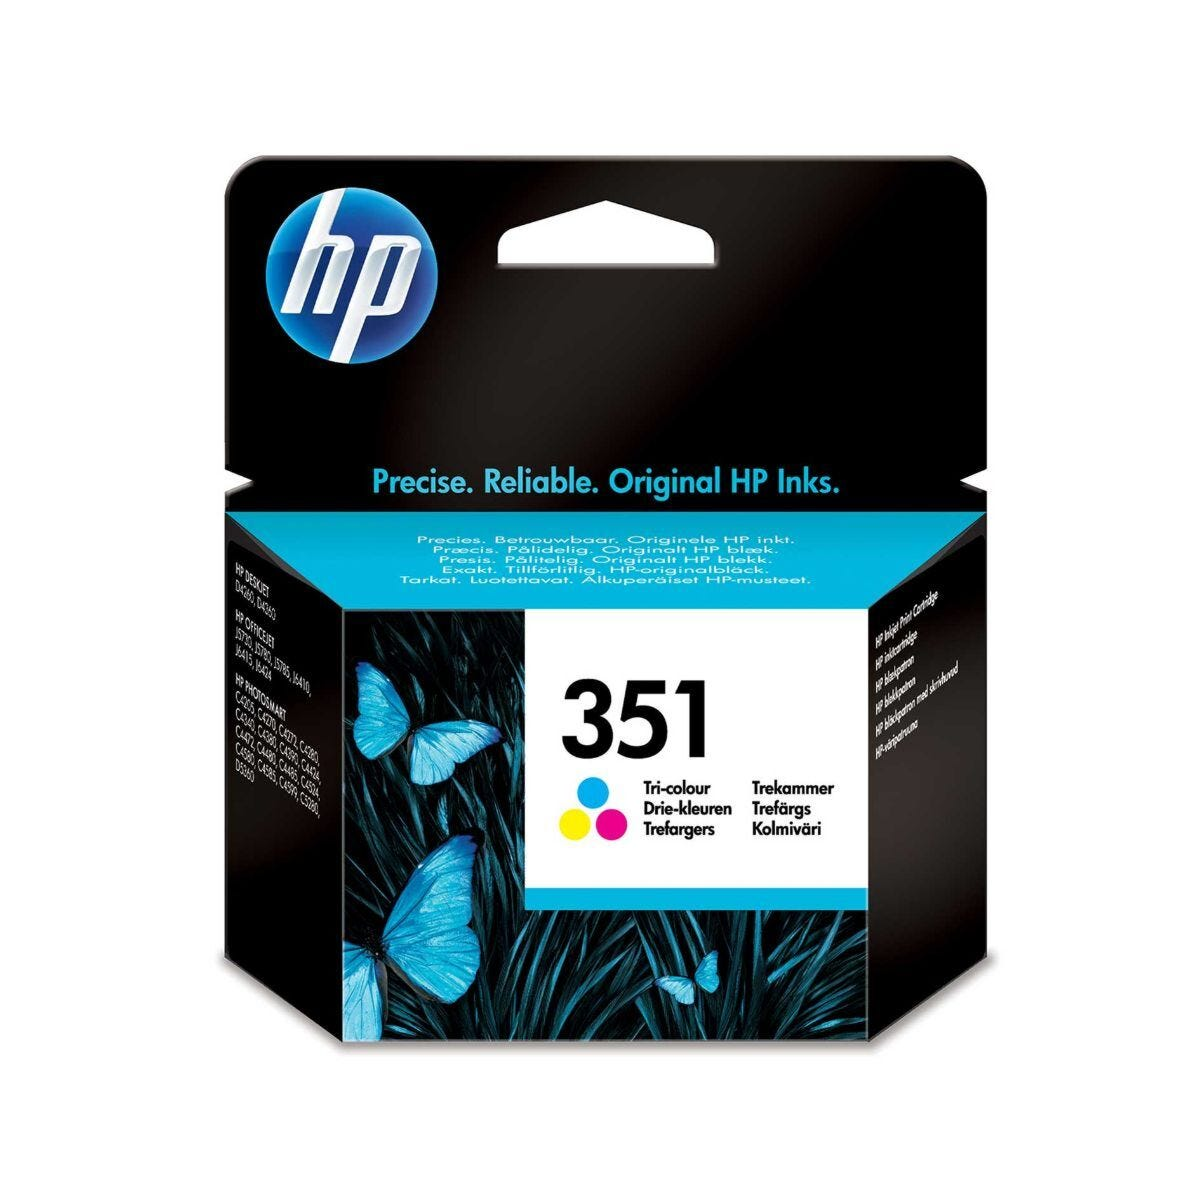 HP 351 Ink Cartridge 3.5ml